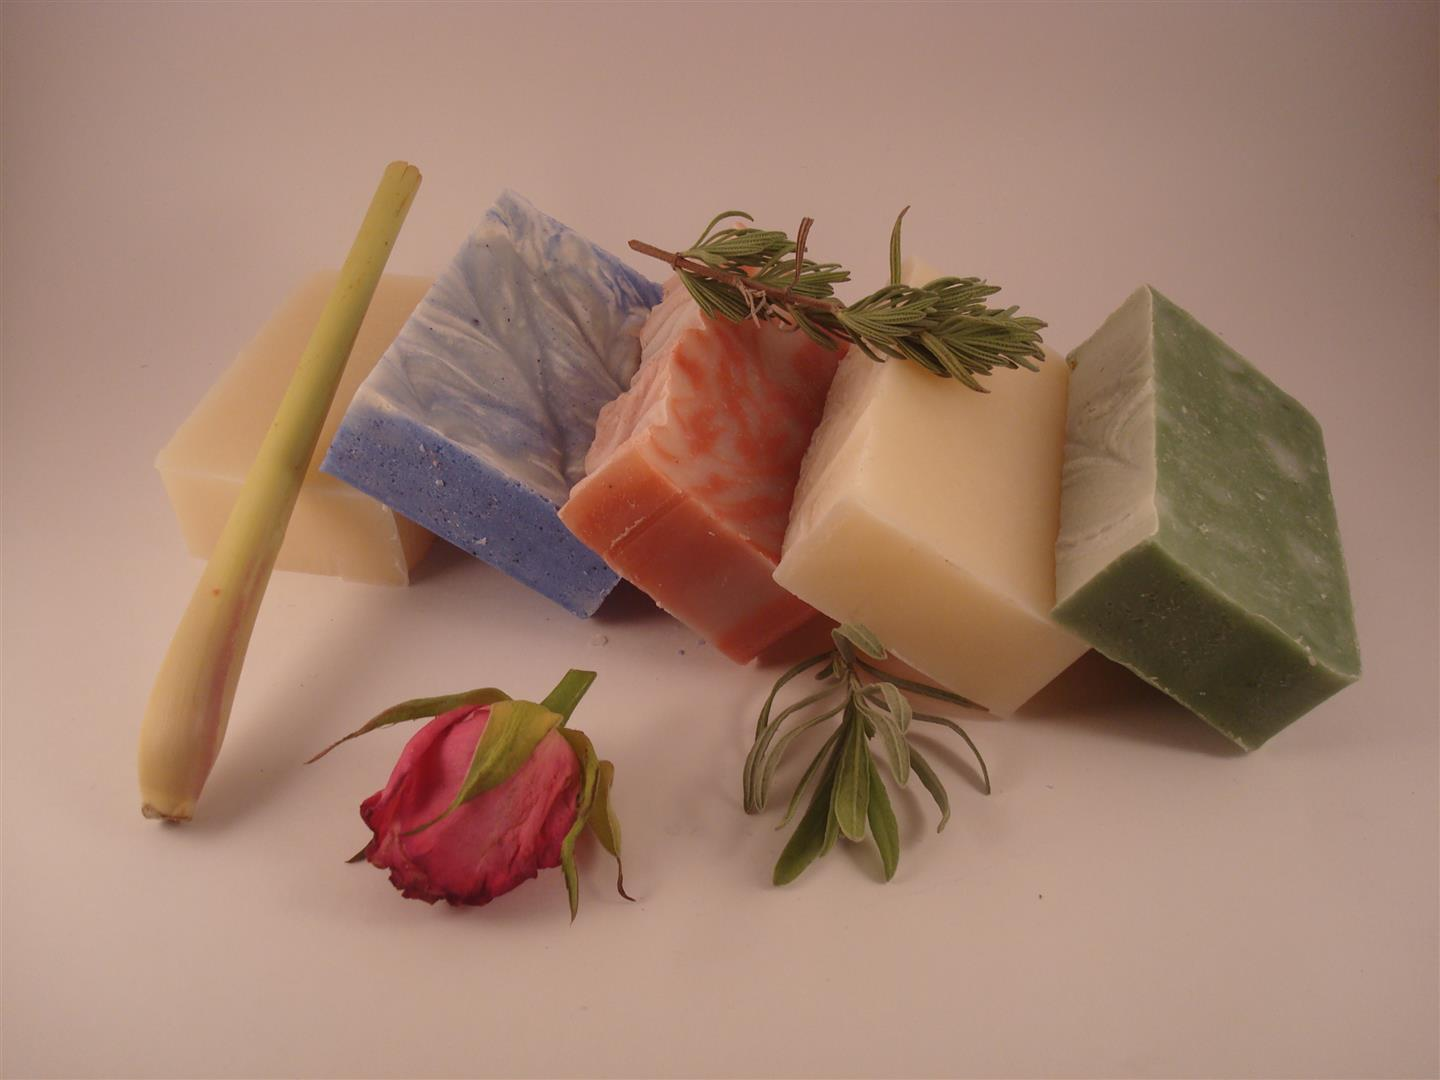 SOAP MAKING WORKSHOP (Fully booked)